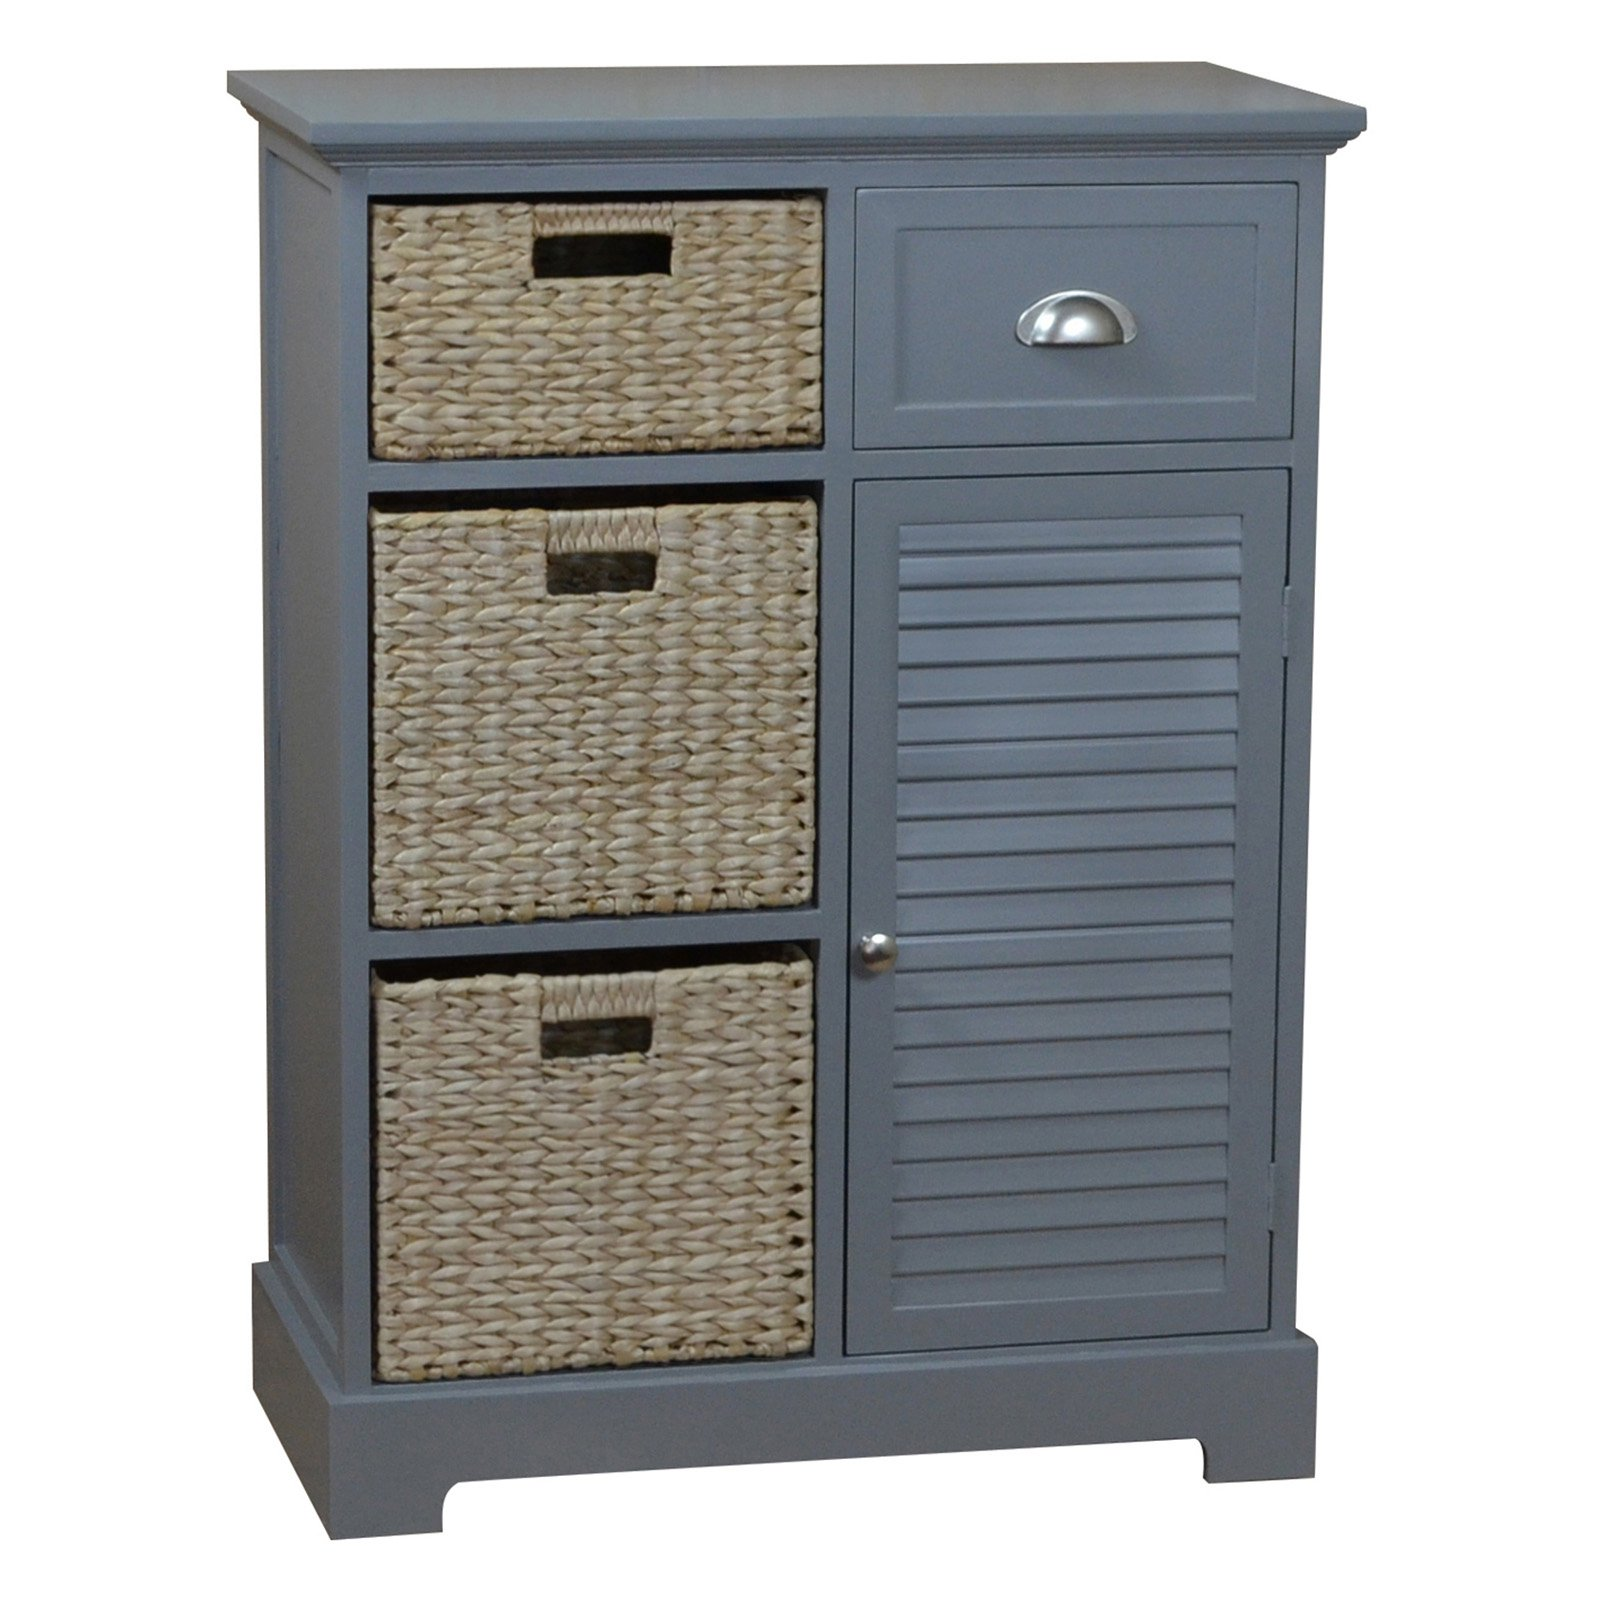 Gallerie Decor Newport Four Drawer Cabinet